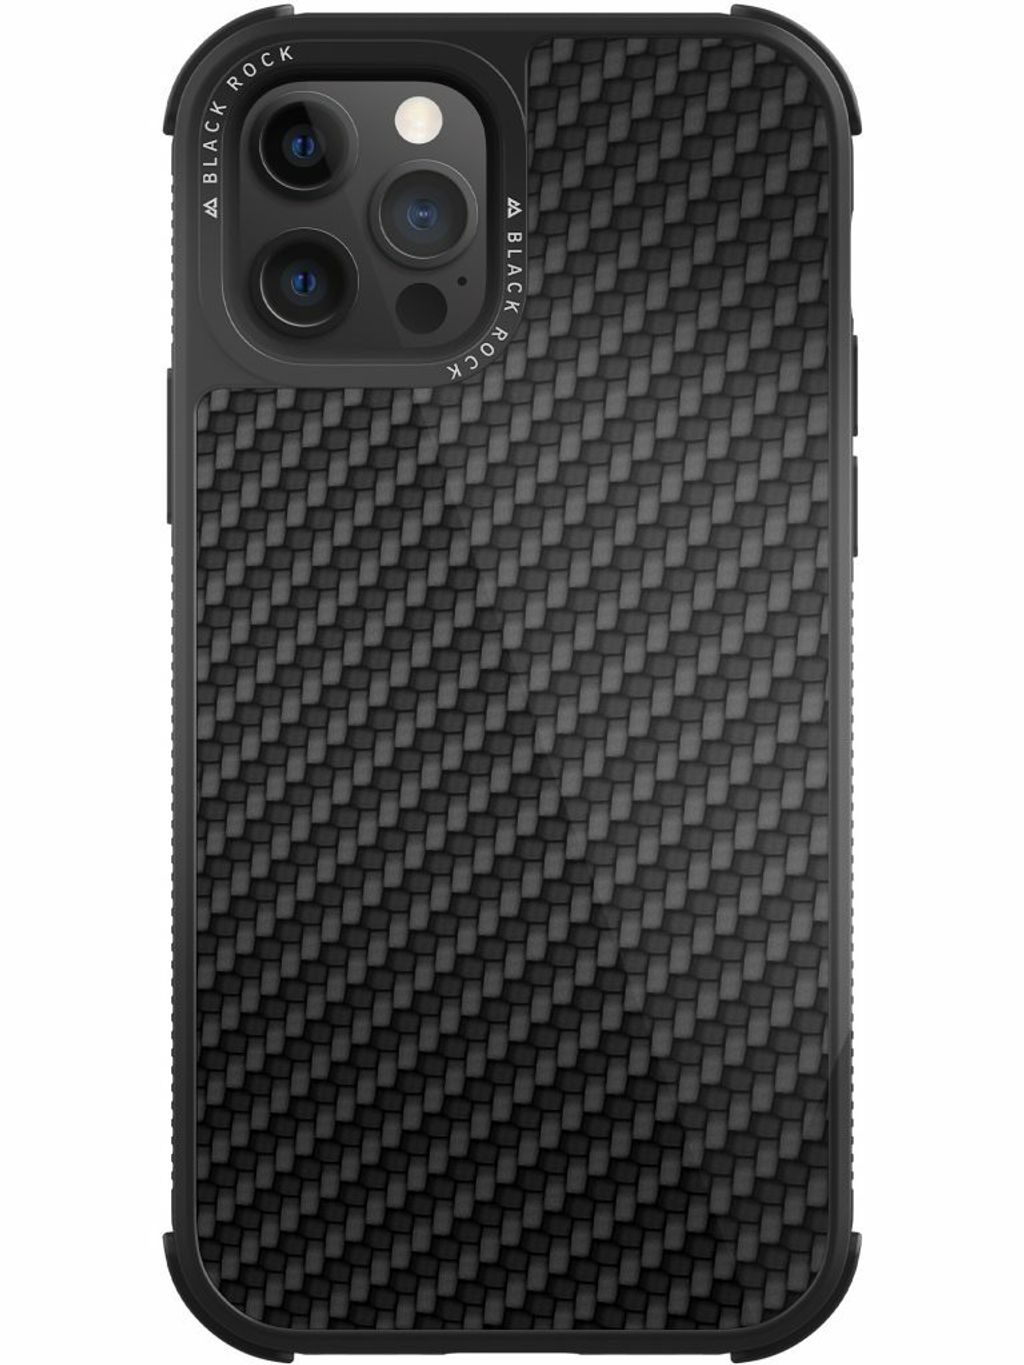 BR_1130RRC02_0lm_RobustCase_RealCarbon-768x1024